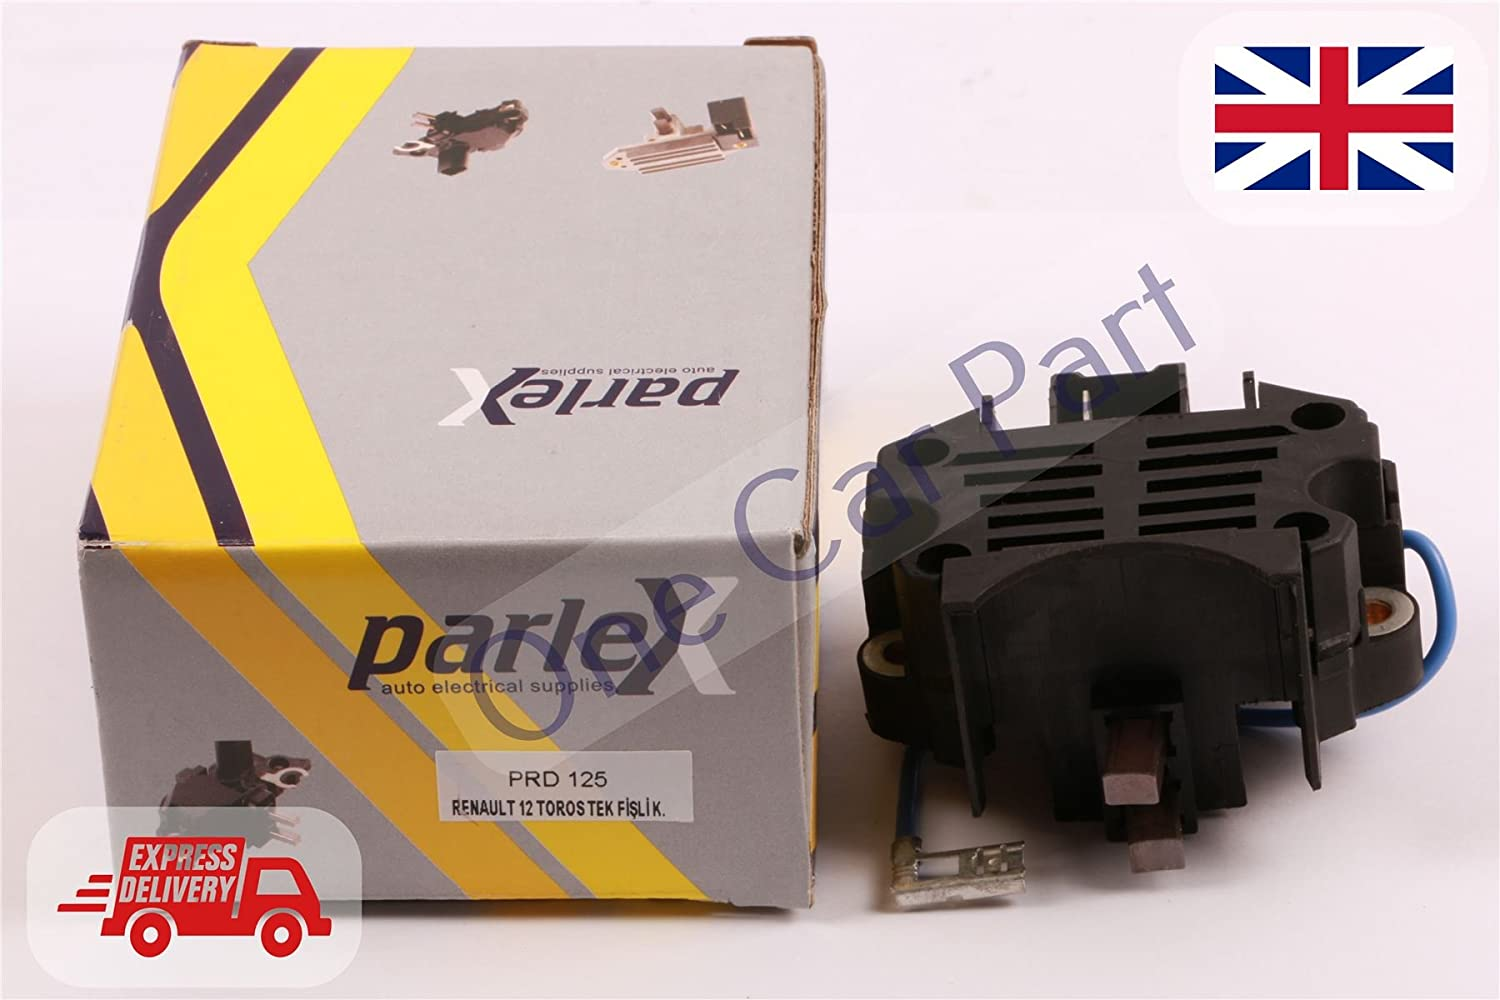 12V PARIS RHONE ALTERNATOR REGULATOR 130661 FITS PEUGEOT CITROEN VOLVO TALBOT